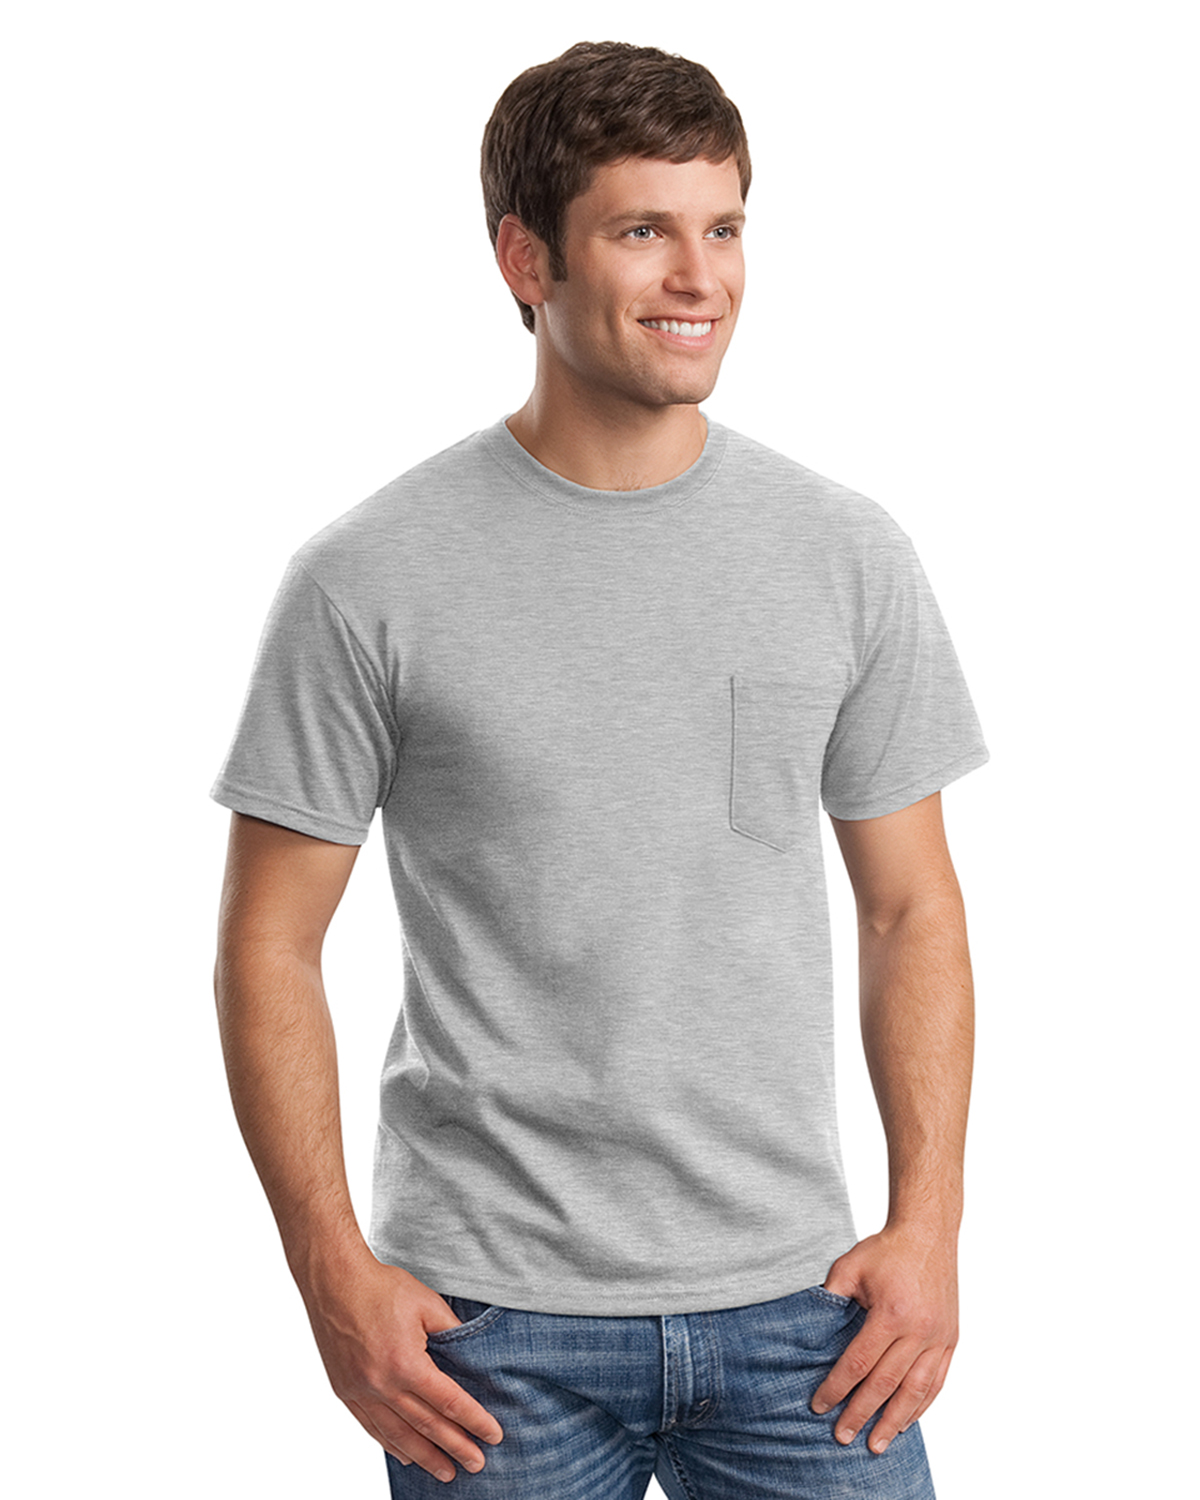 Mens ultra cotton 100 cotton t shirt with pocket at big for Mens 100 cotton t shirts